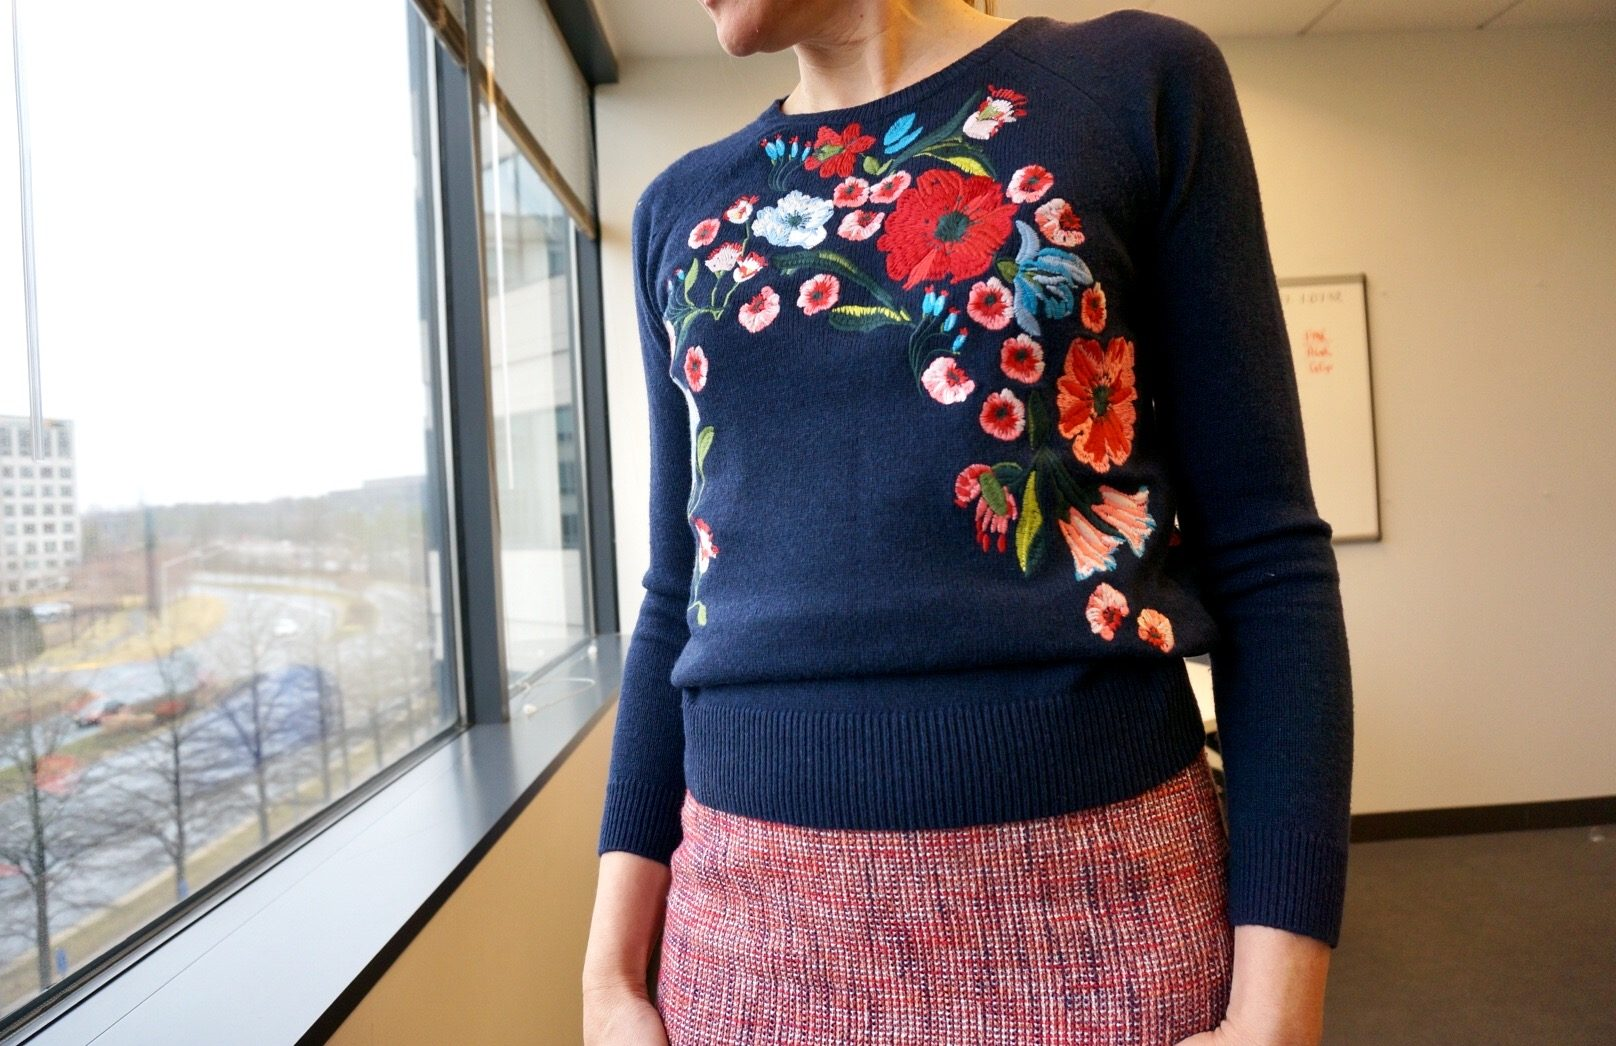 My 9 to 5 Shoes my9to5shoes.com LOFT Bouquet Sweater